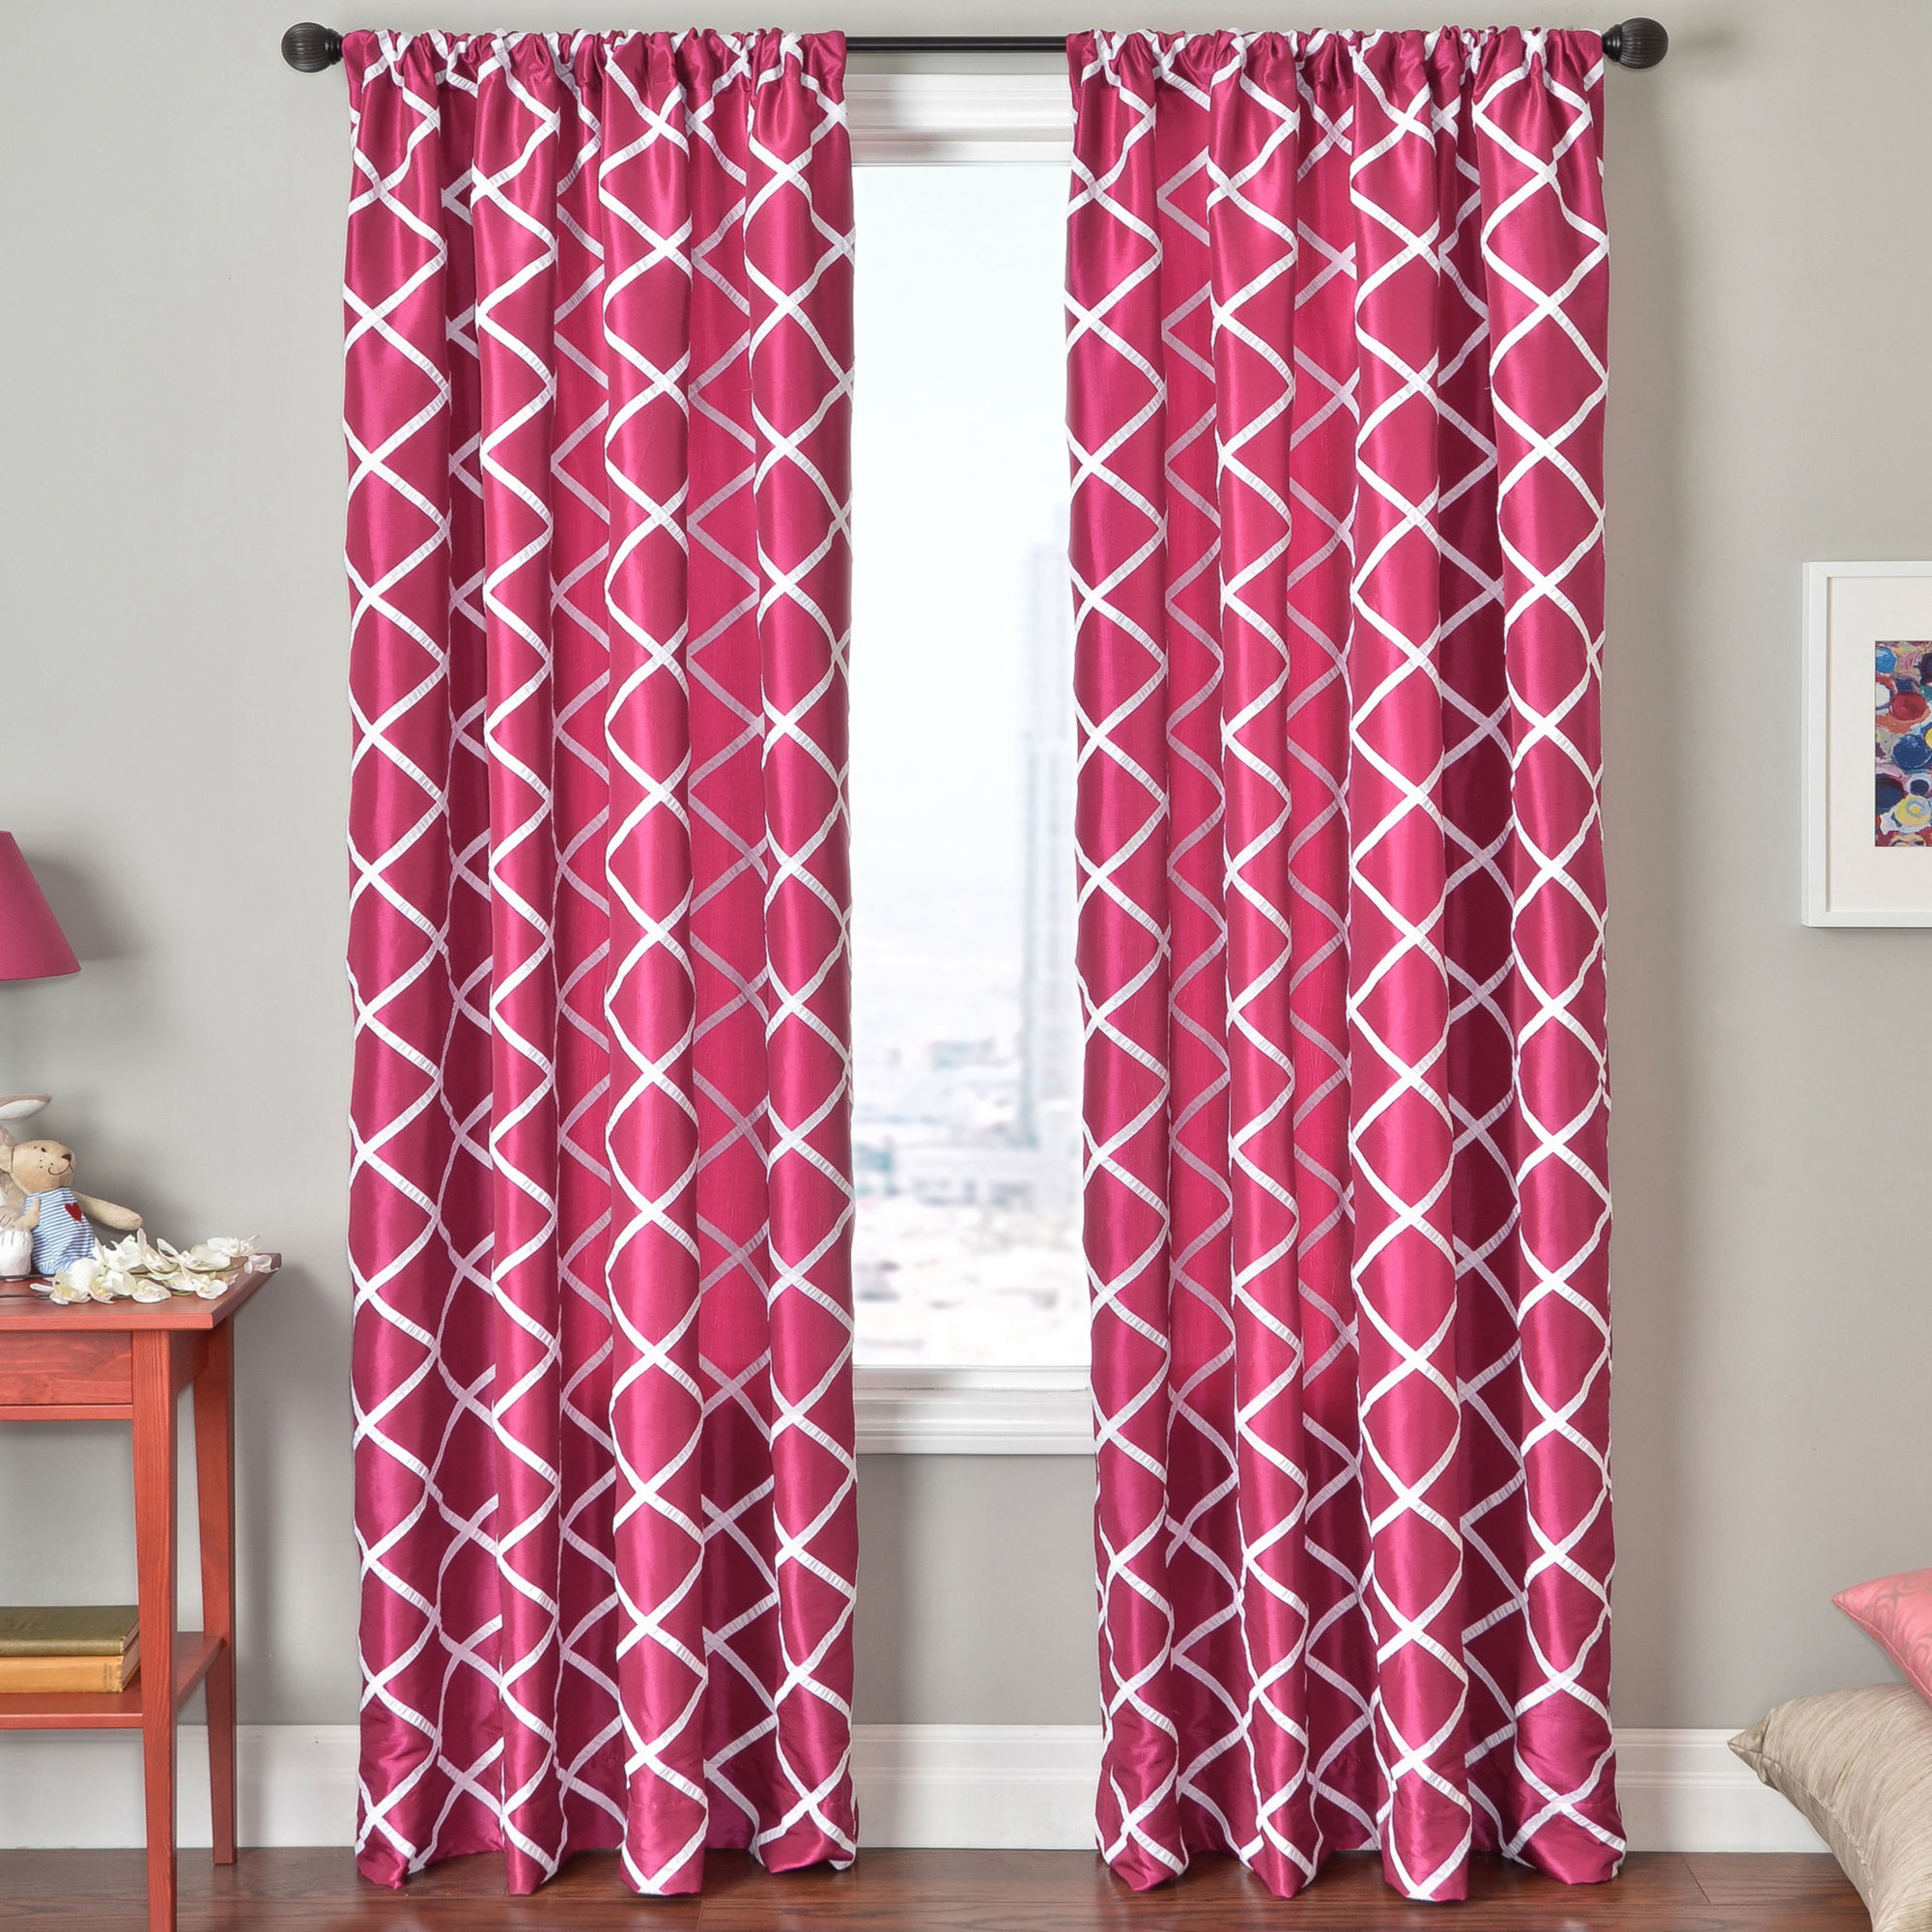 Blackout Curtains Childrens Bedroom Collection Including Baby ...